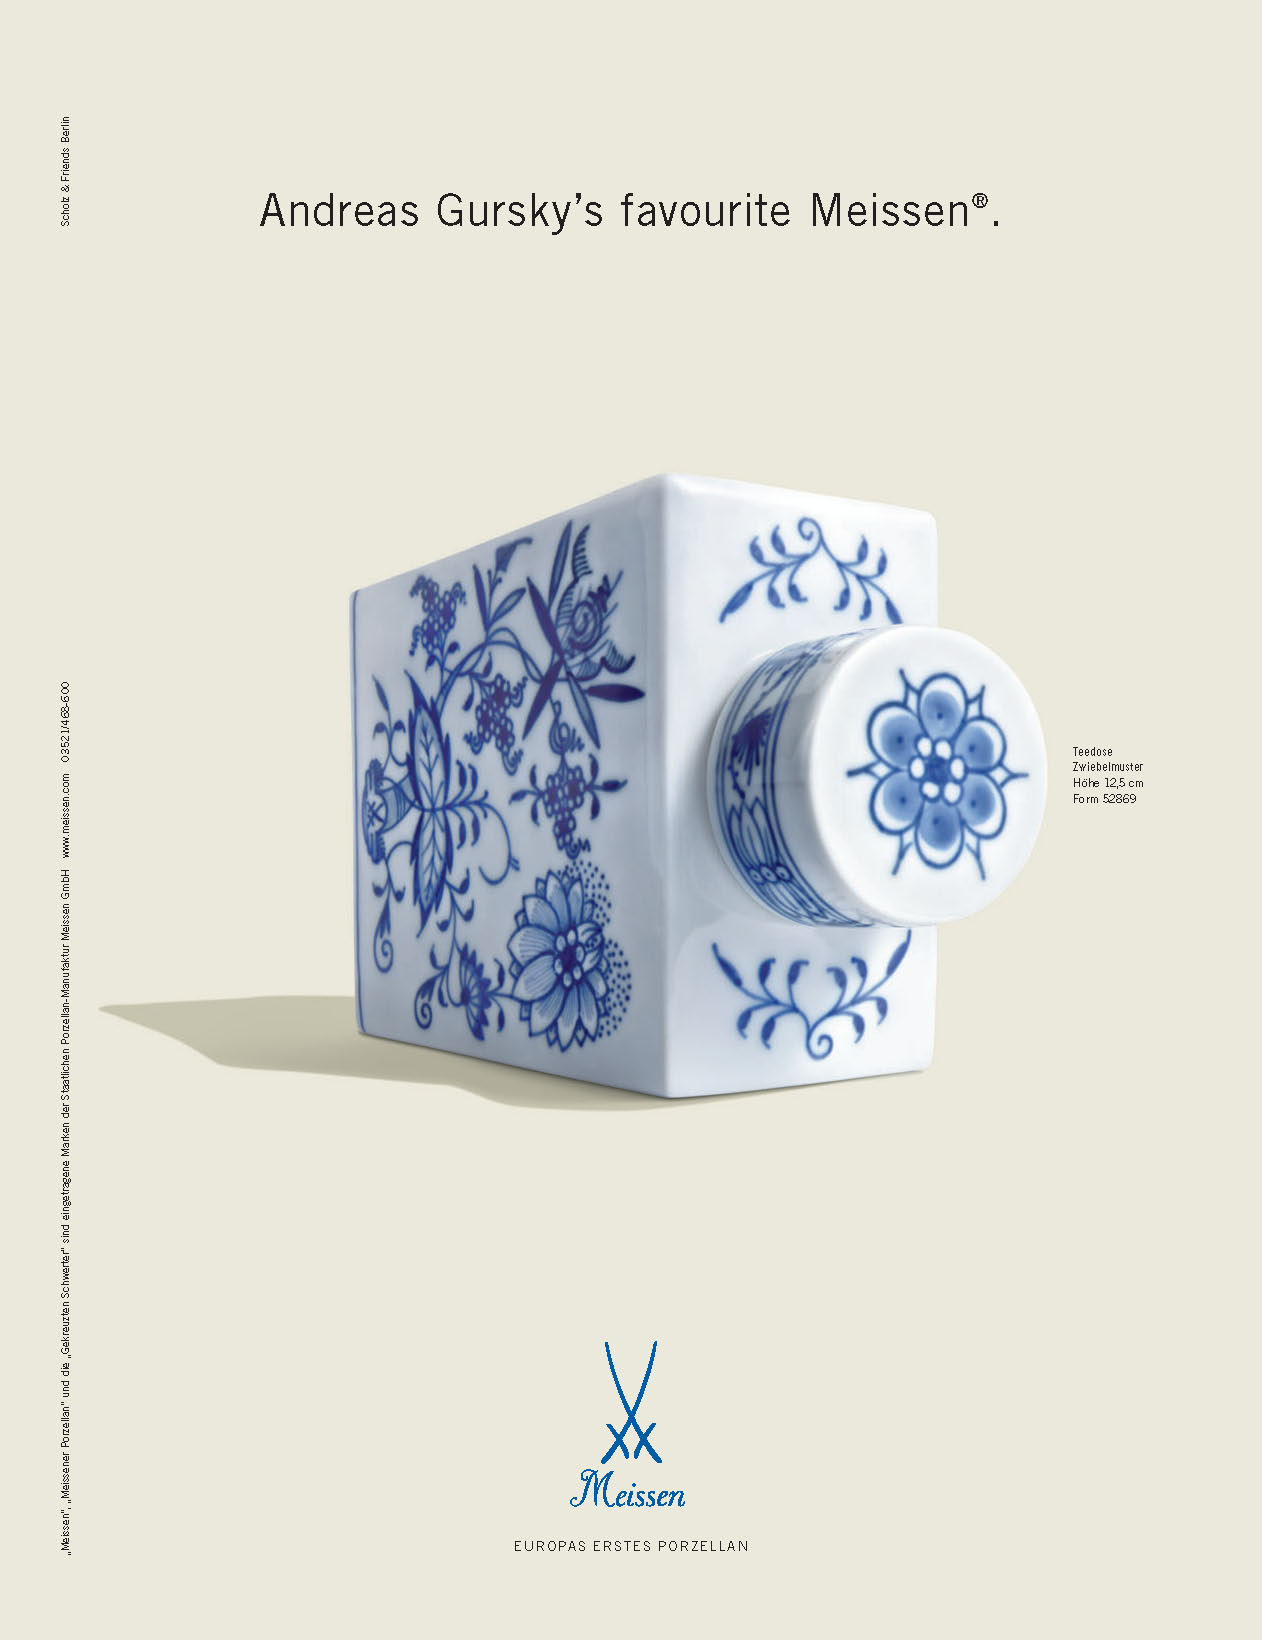 Andreas Gursky's favourite Meissen.